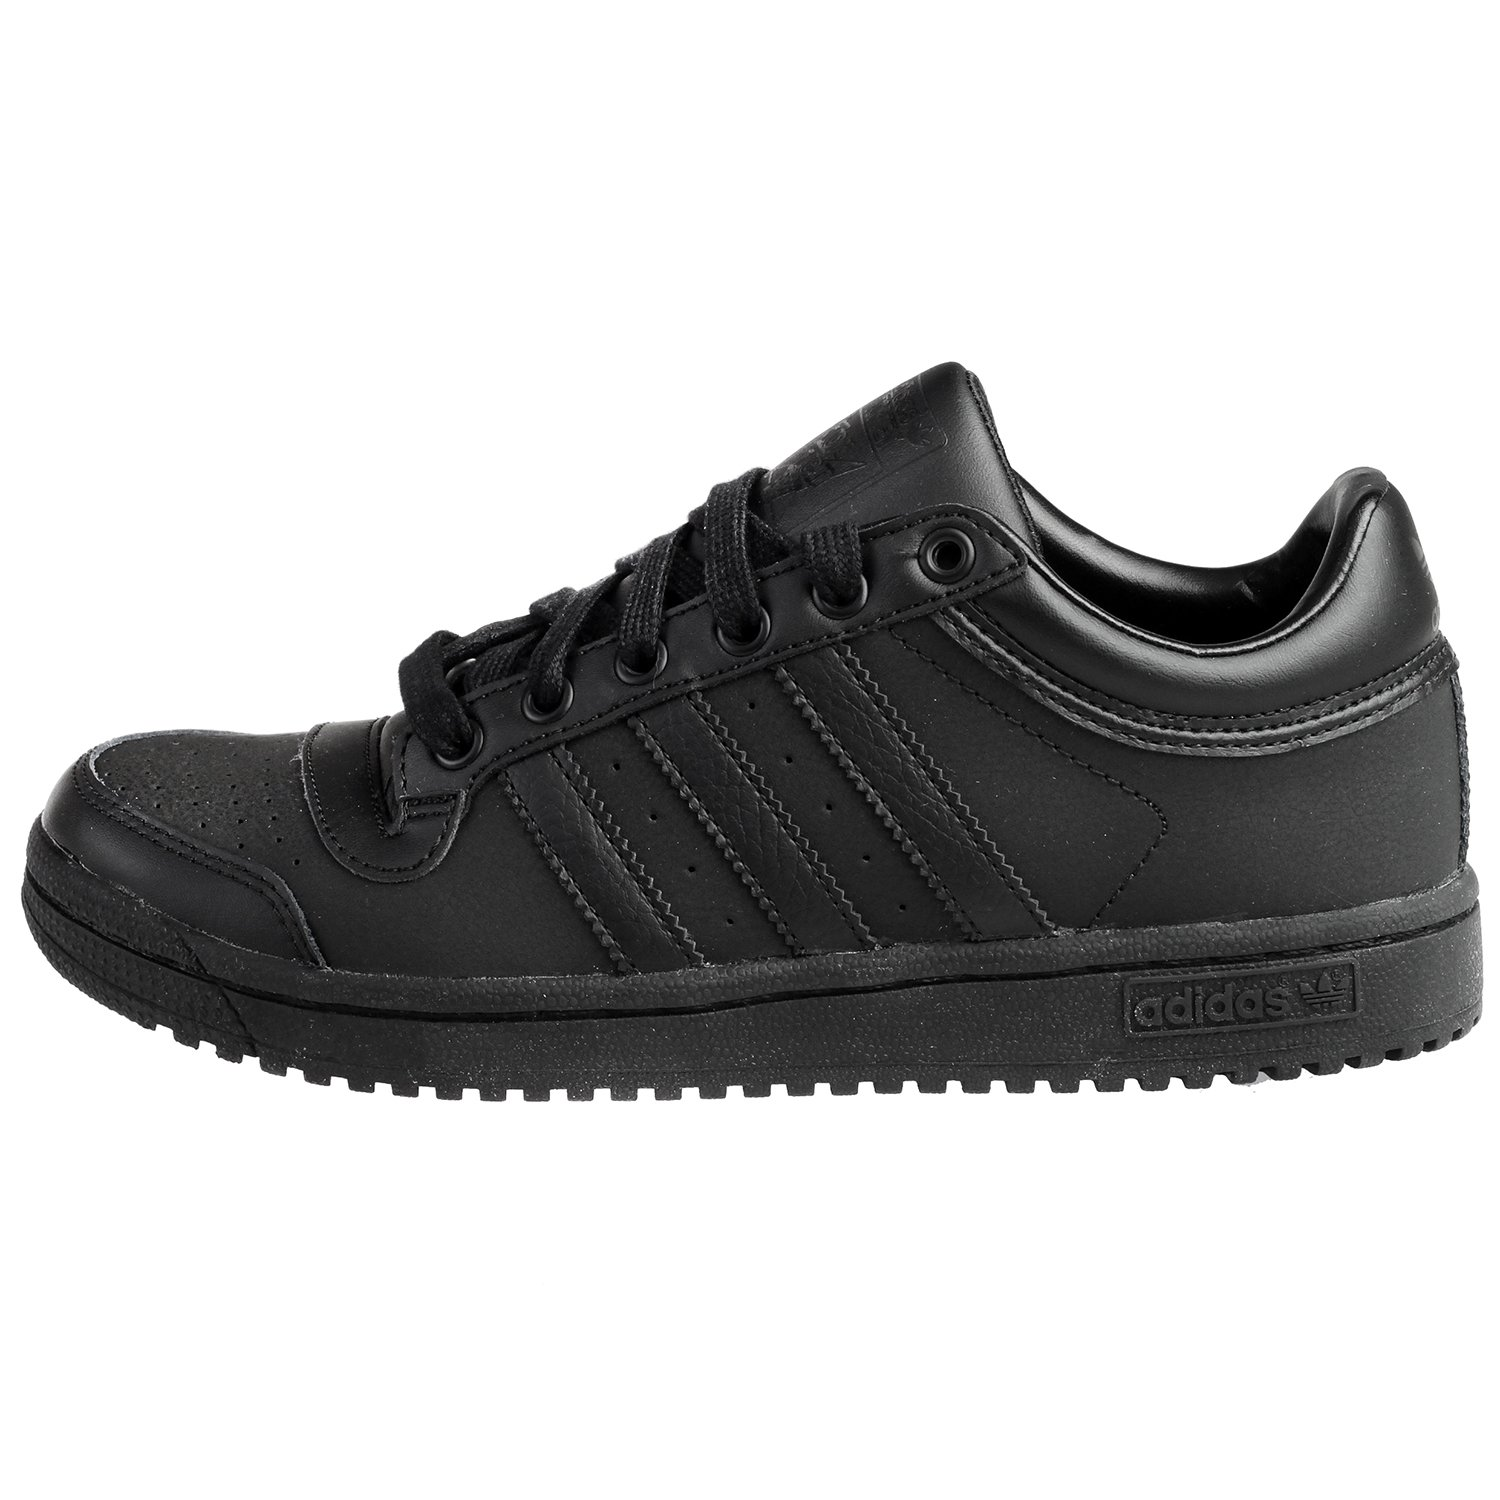 brand new bd386 21f63 Amazon.com  adidas Top Ten Low (Kids)  Shoes